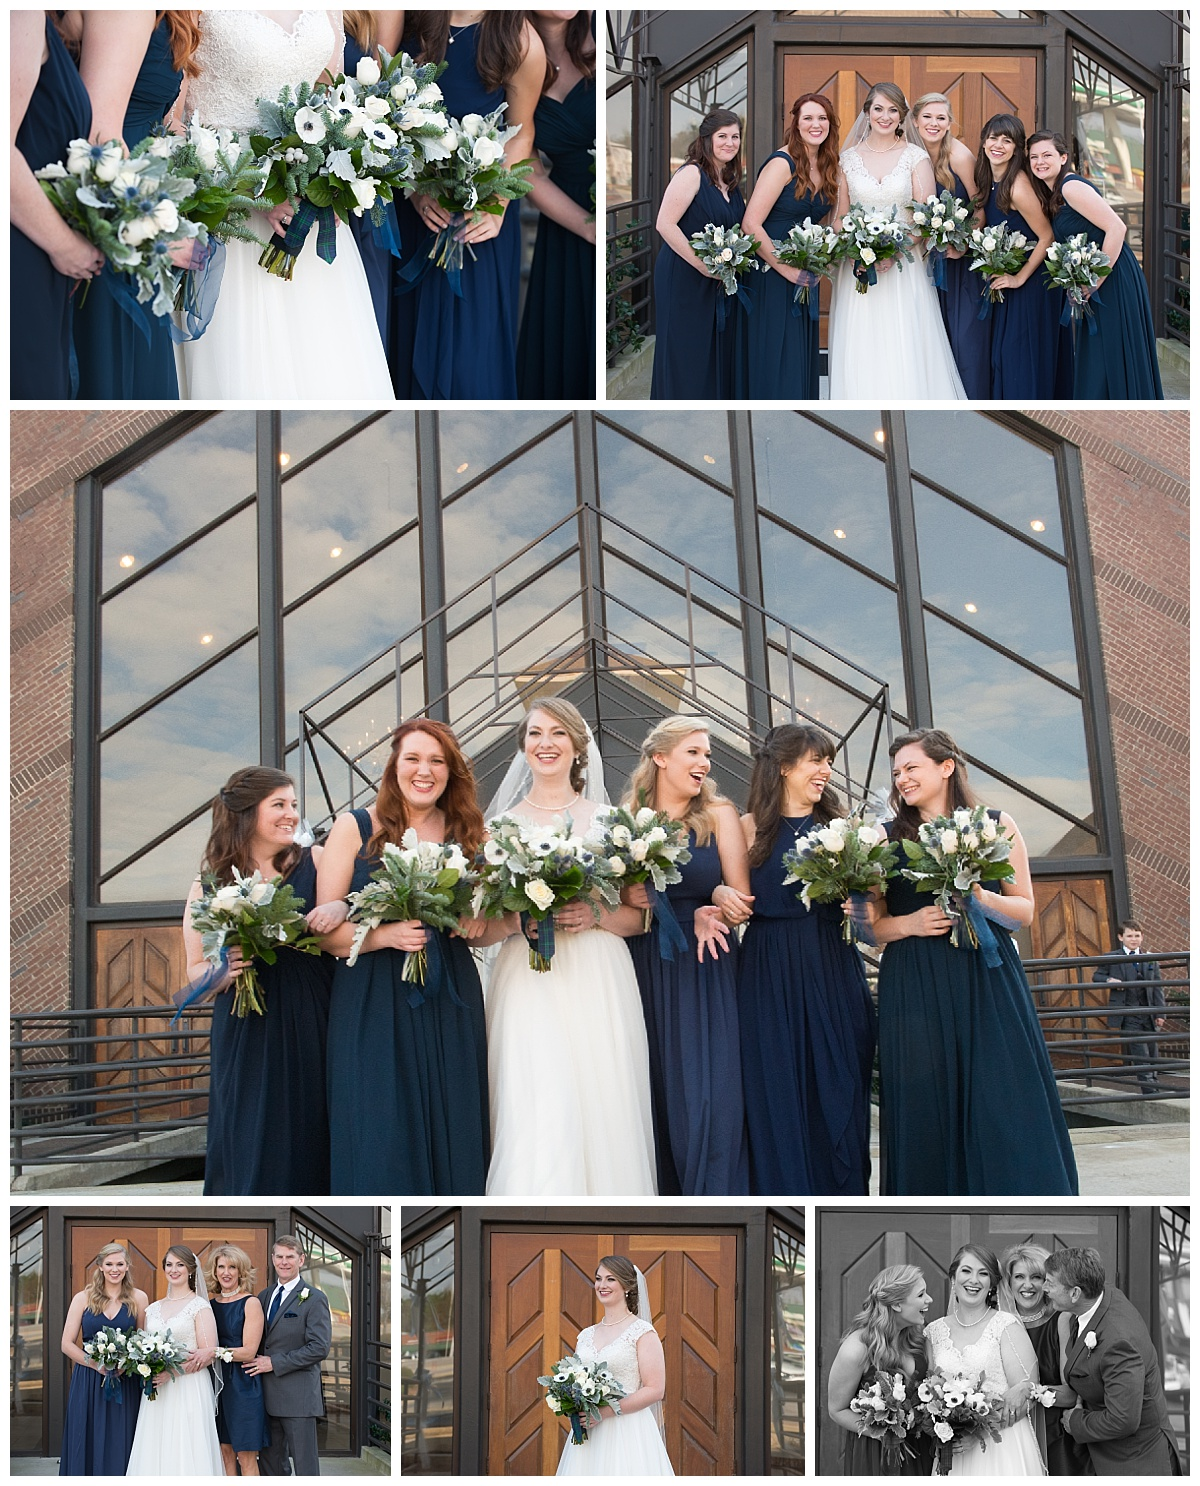 Blue bridesmaids gowns